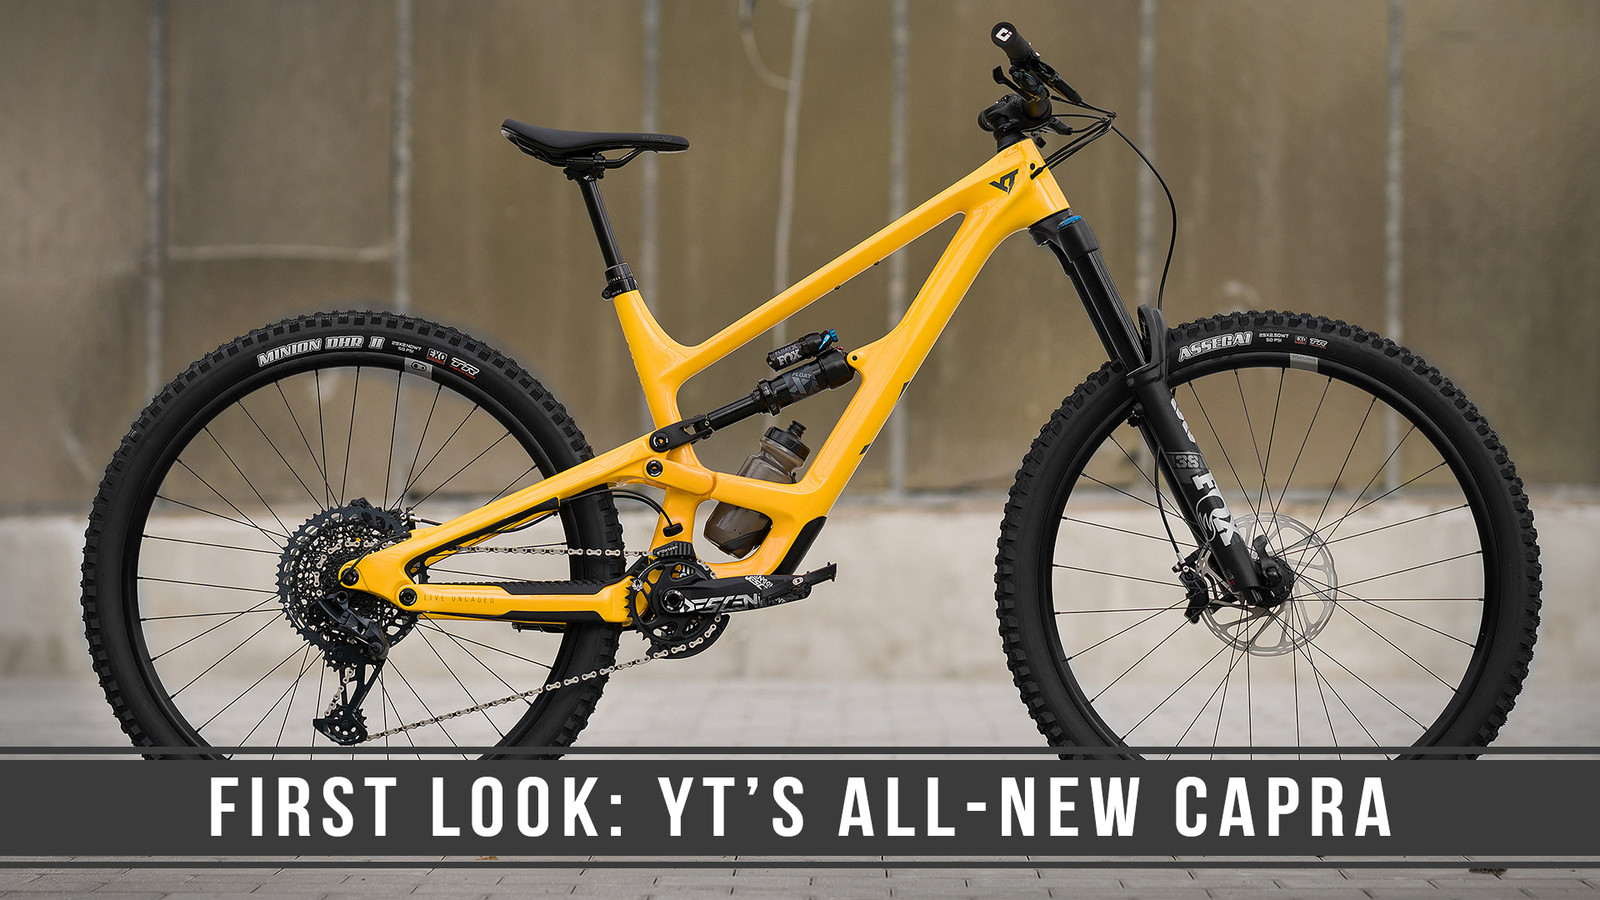 Return of the Goat - YT Introduces the All-New Capra